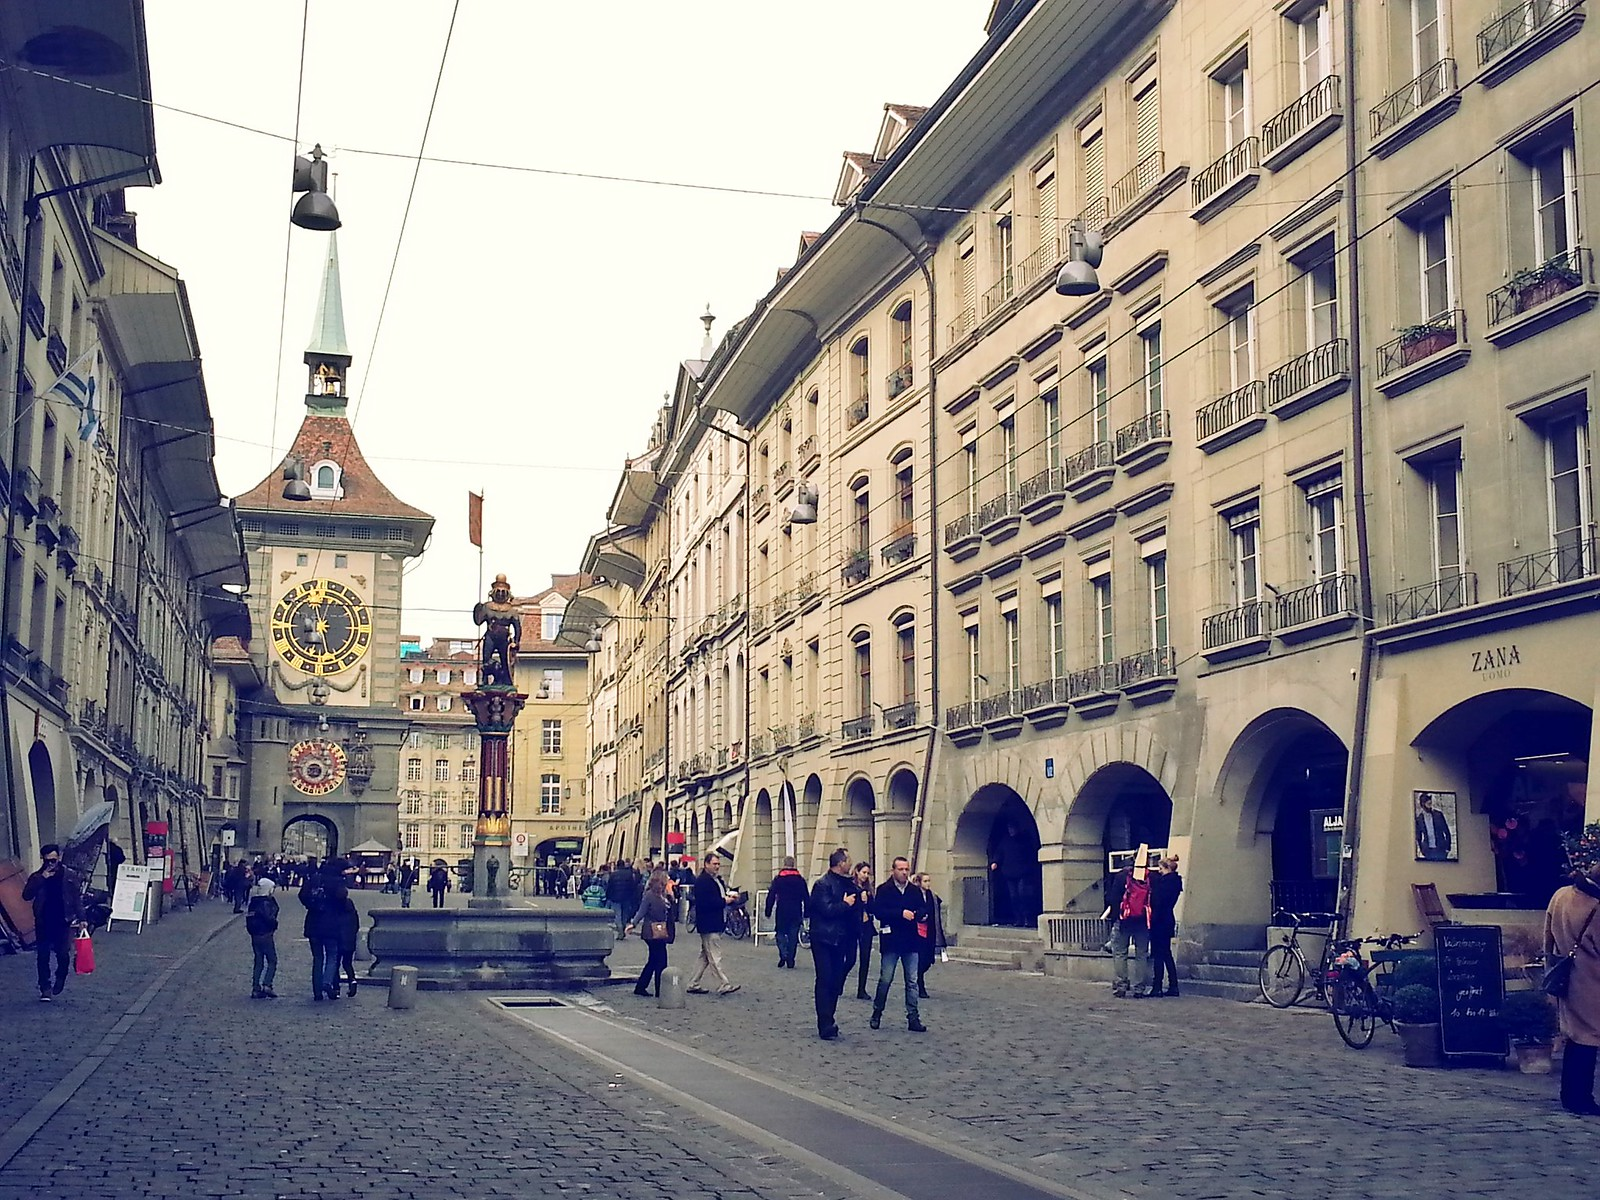 16-01-30 (Bern) Old Town with the Zytglogge.